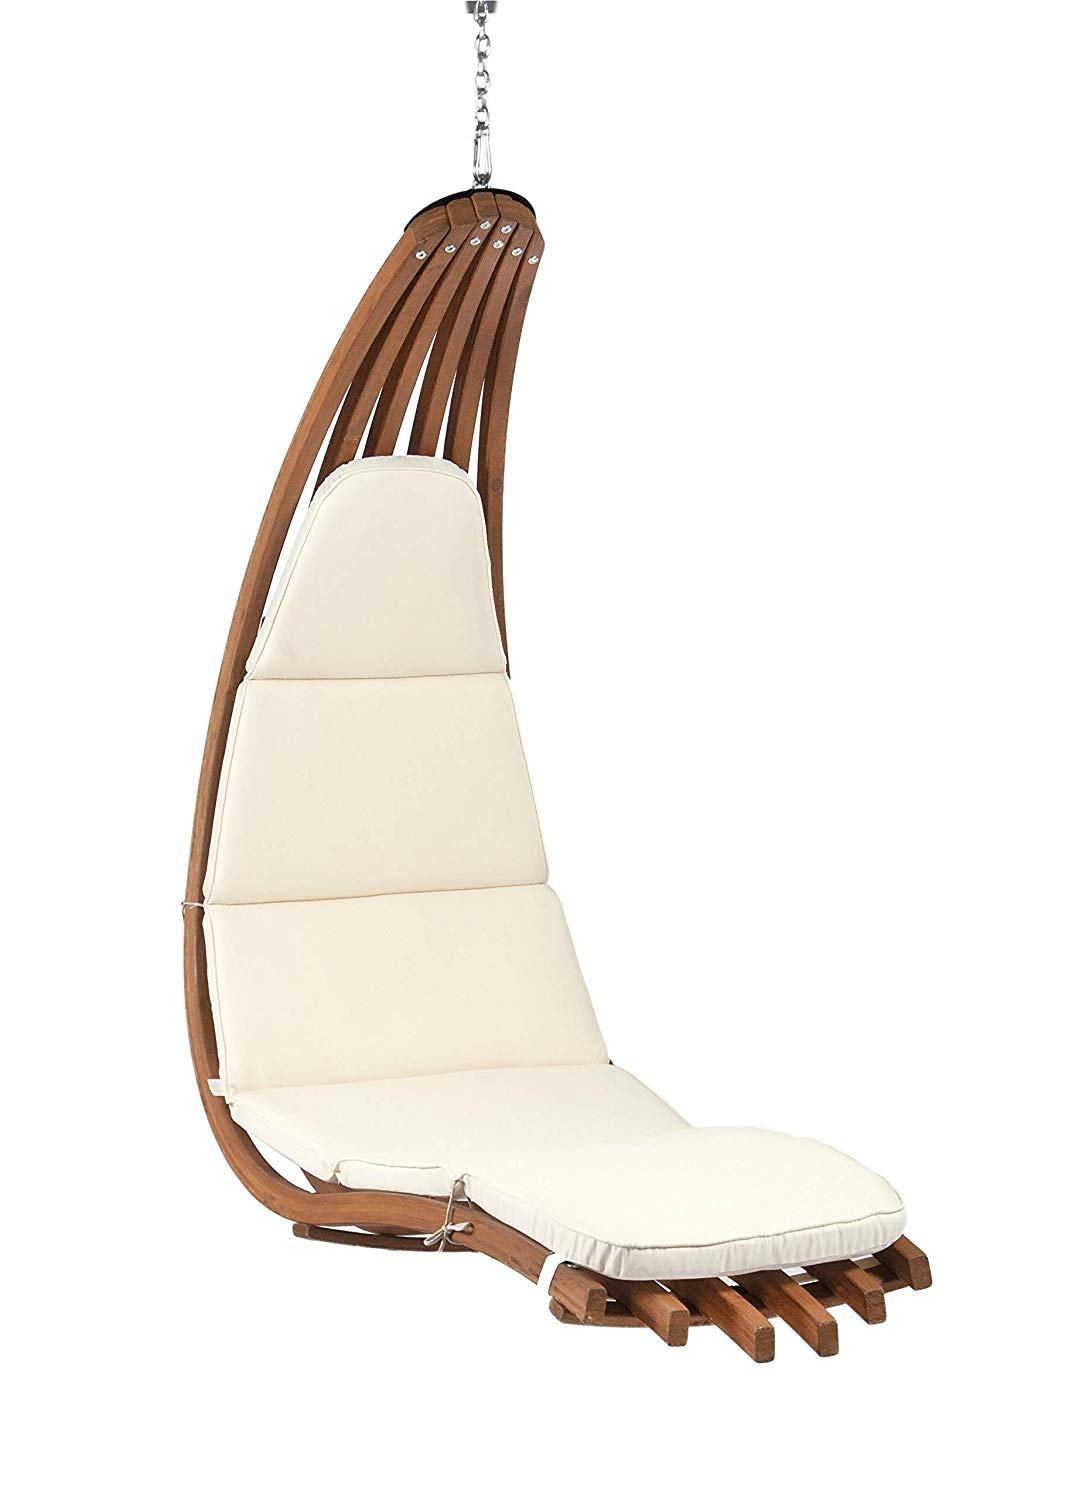 wooden-floating-lounger-chair-and-how-to-hang-it-in-bedroom